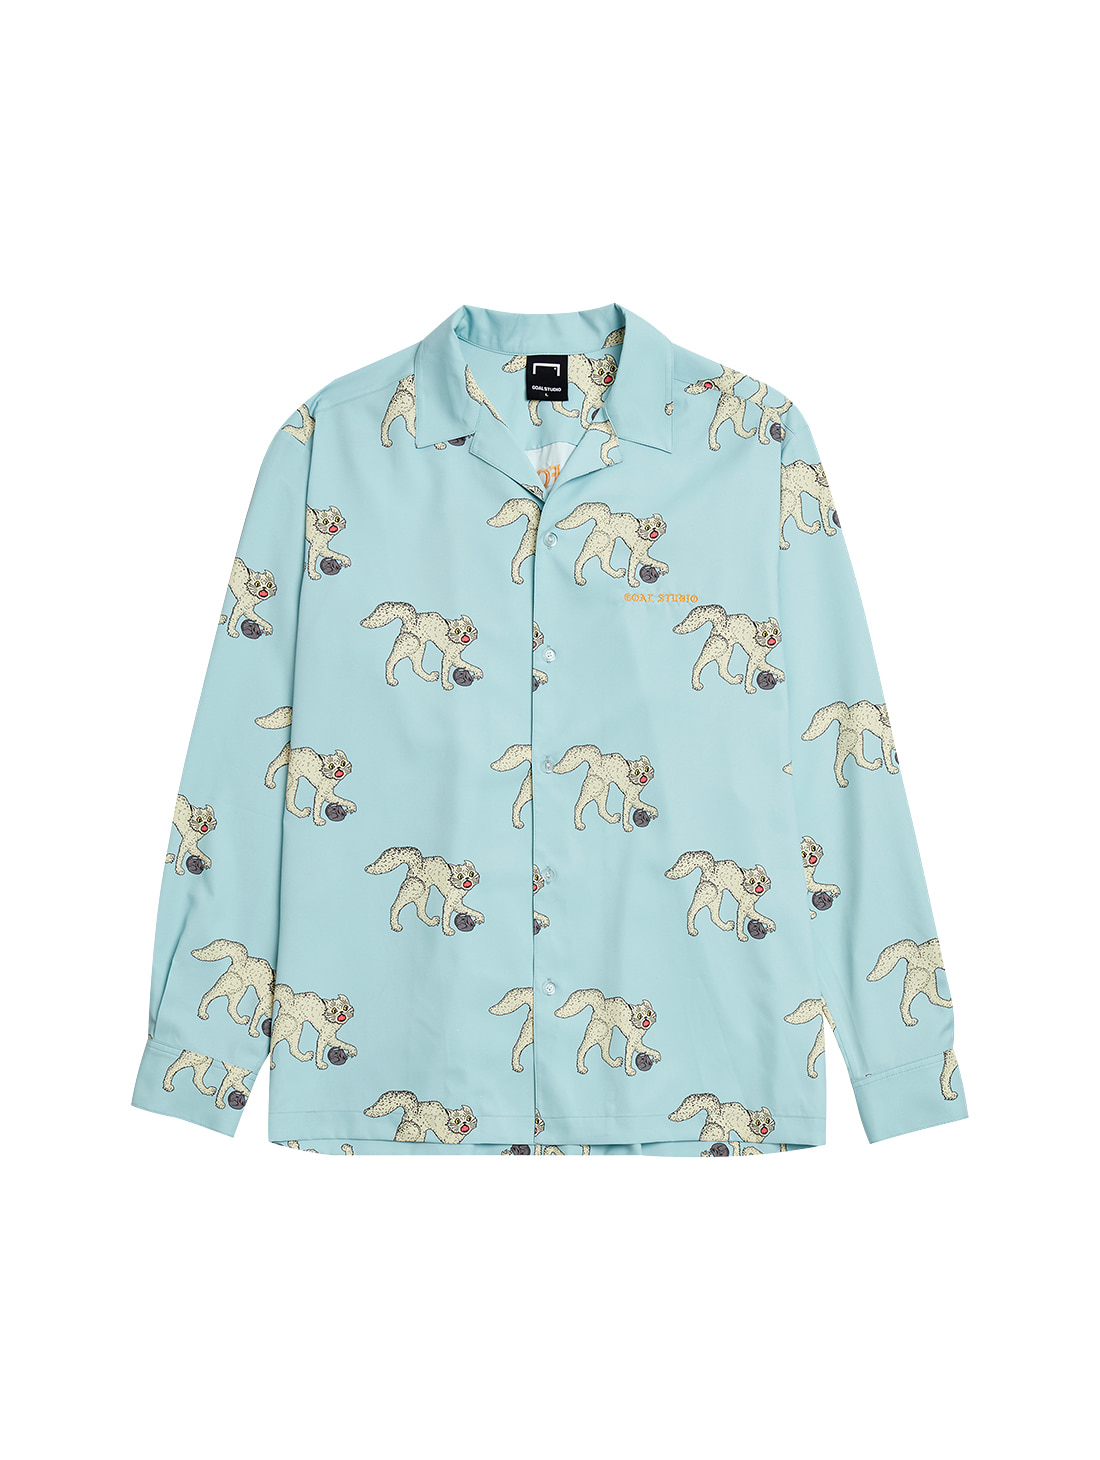 MC ALL OVER PATTERN SHIRTS - LIGHT BLUE